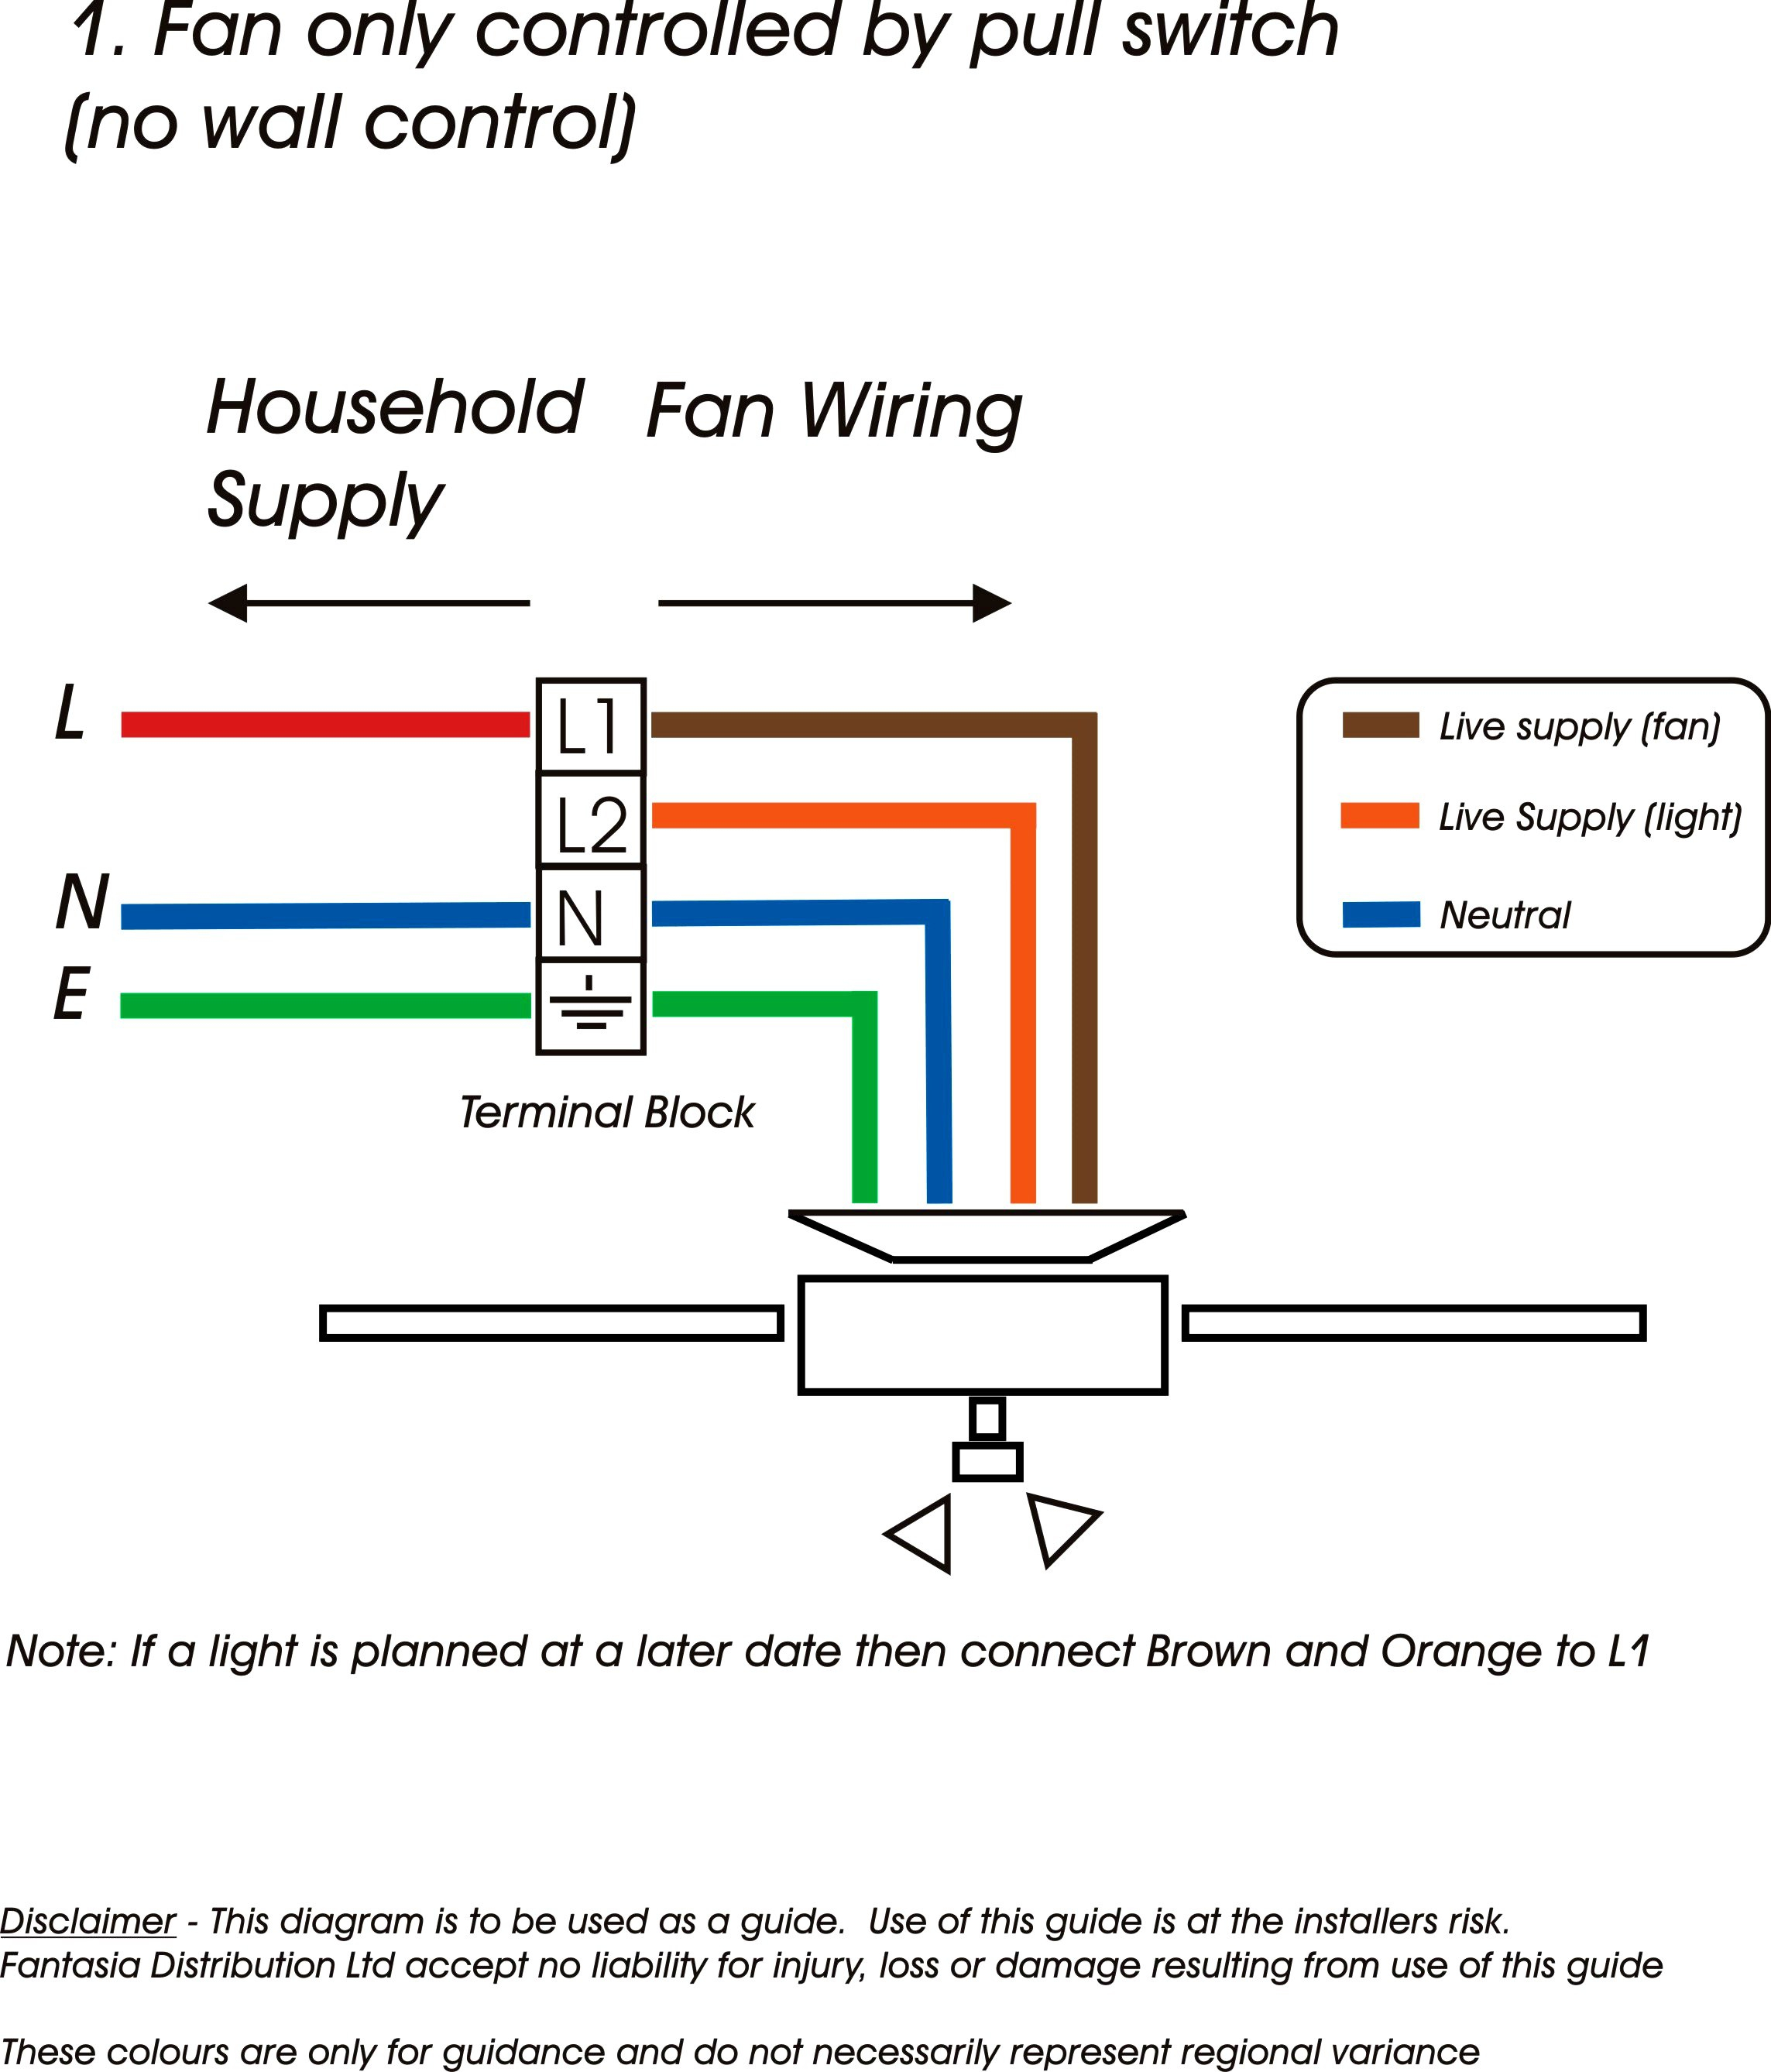 westinghouse ceiling fan wiring diagram Collection-Wiring Diagram For Ceiling Fan With Wall Switch Easy The Eye Throughout 14-b